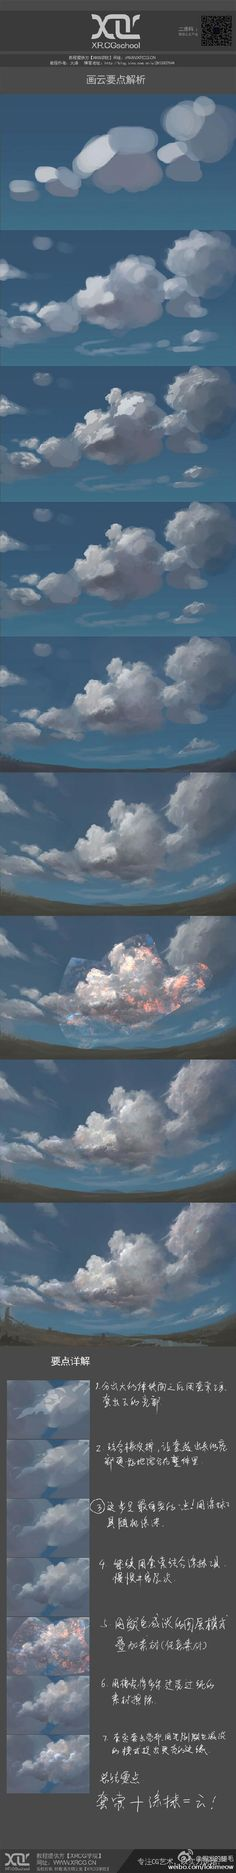 New Digital Art Tutorial Sky Ideas Digital Painting Tutorials, Digital Art Tutorial, Art Tutorials, Process Art, Painting Process, Doodle Drawing, Cloud Drawing, Cloud Art, Poses References